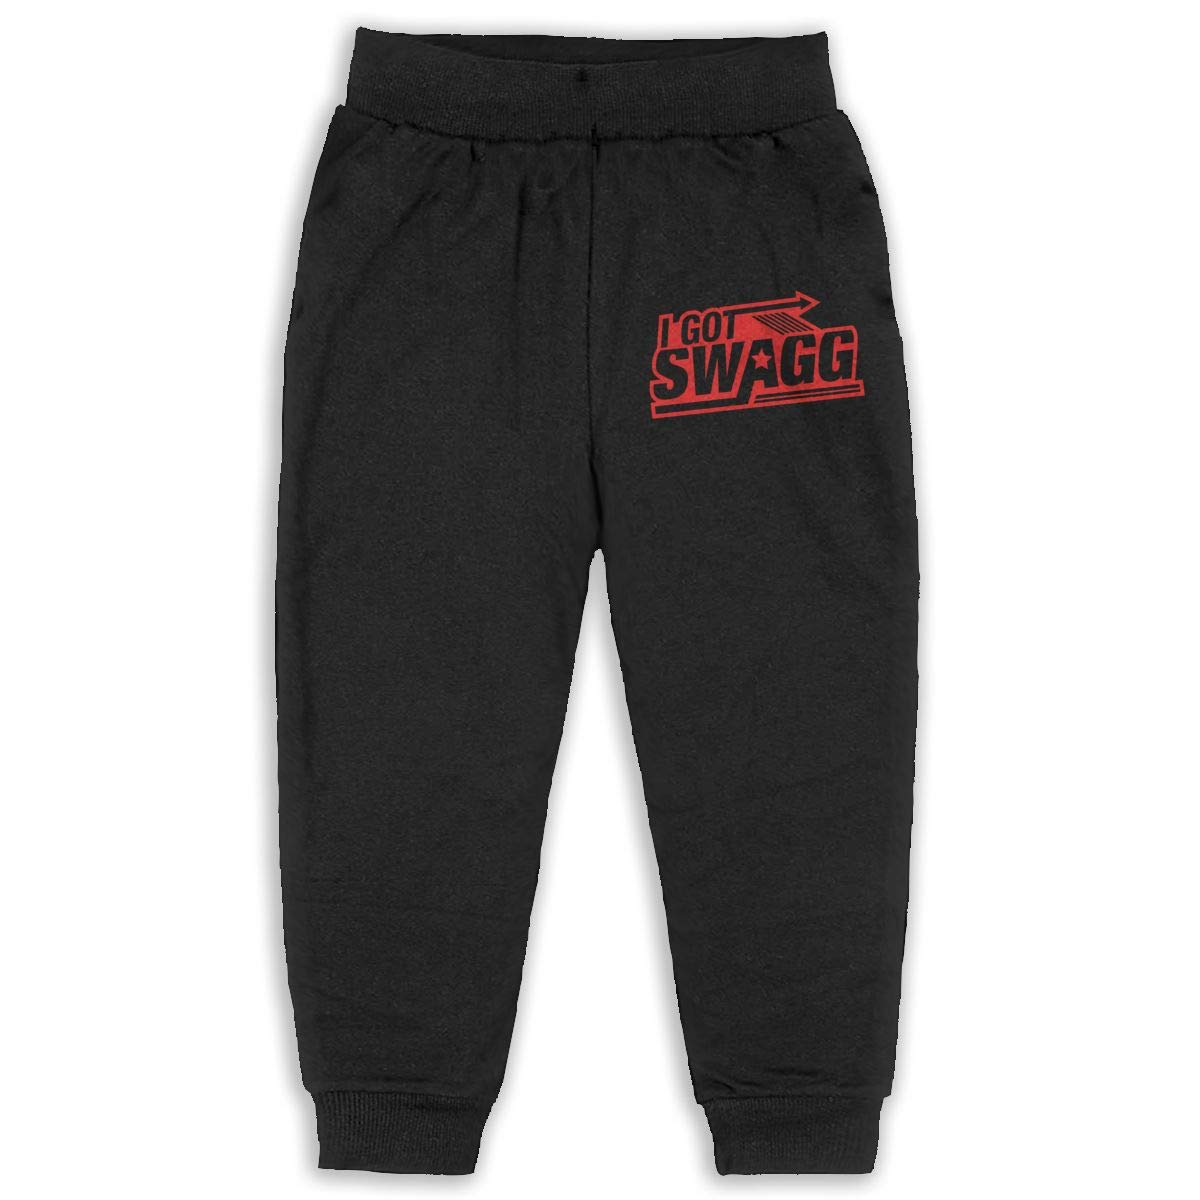 Cqelng Oii I Got Swagg 2-6T Boys Active Jogger Soft Pant